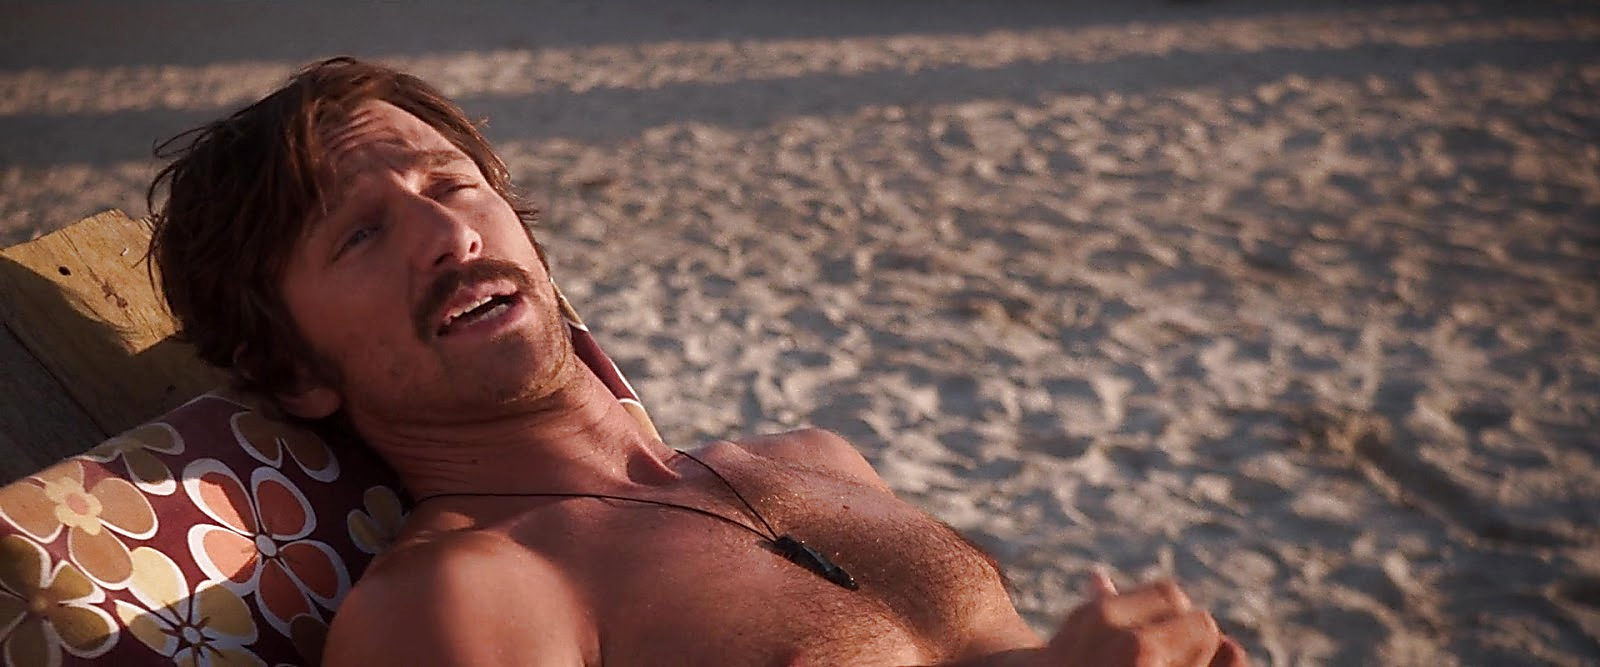 Chris Evans sexy shirtless scene July 31, 2019, 3pm